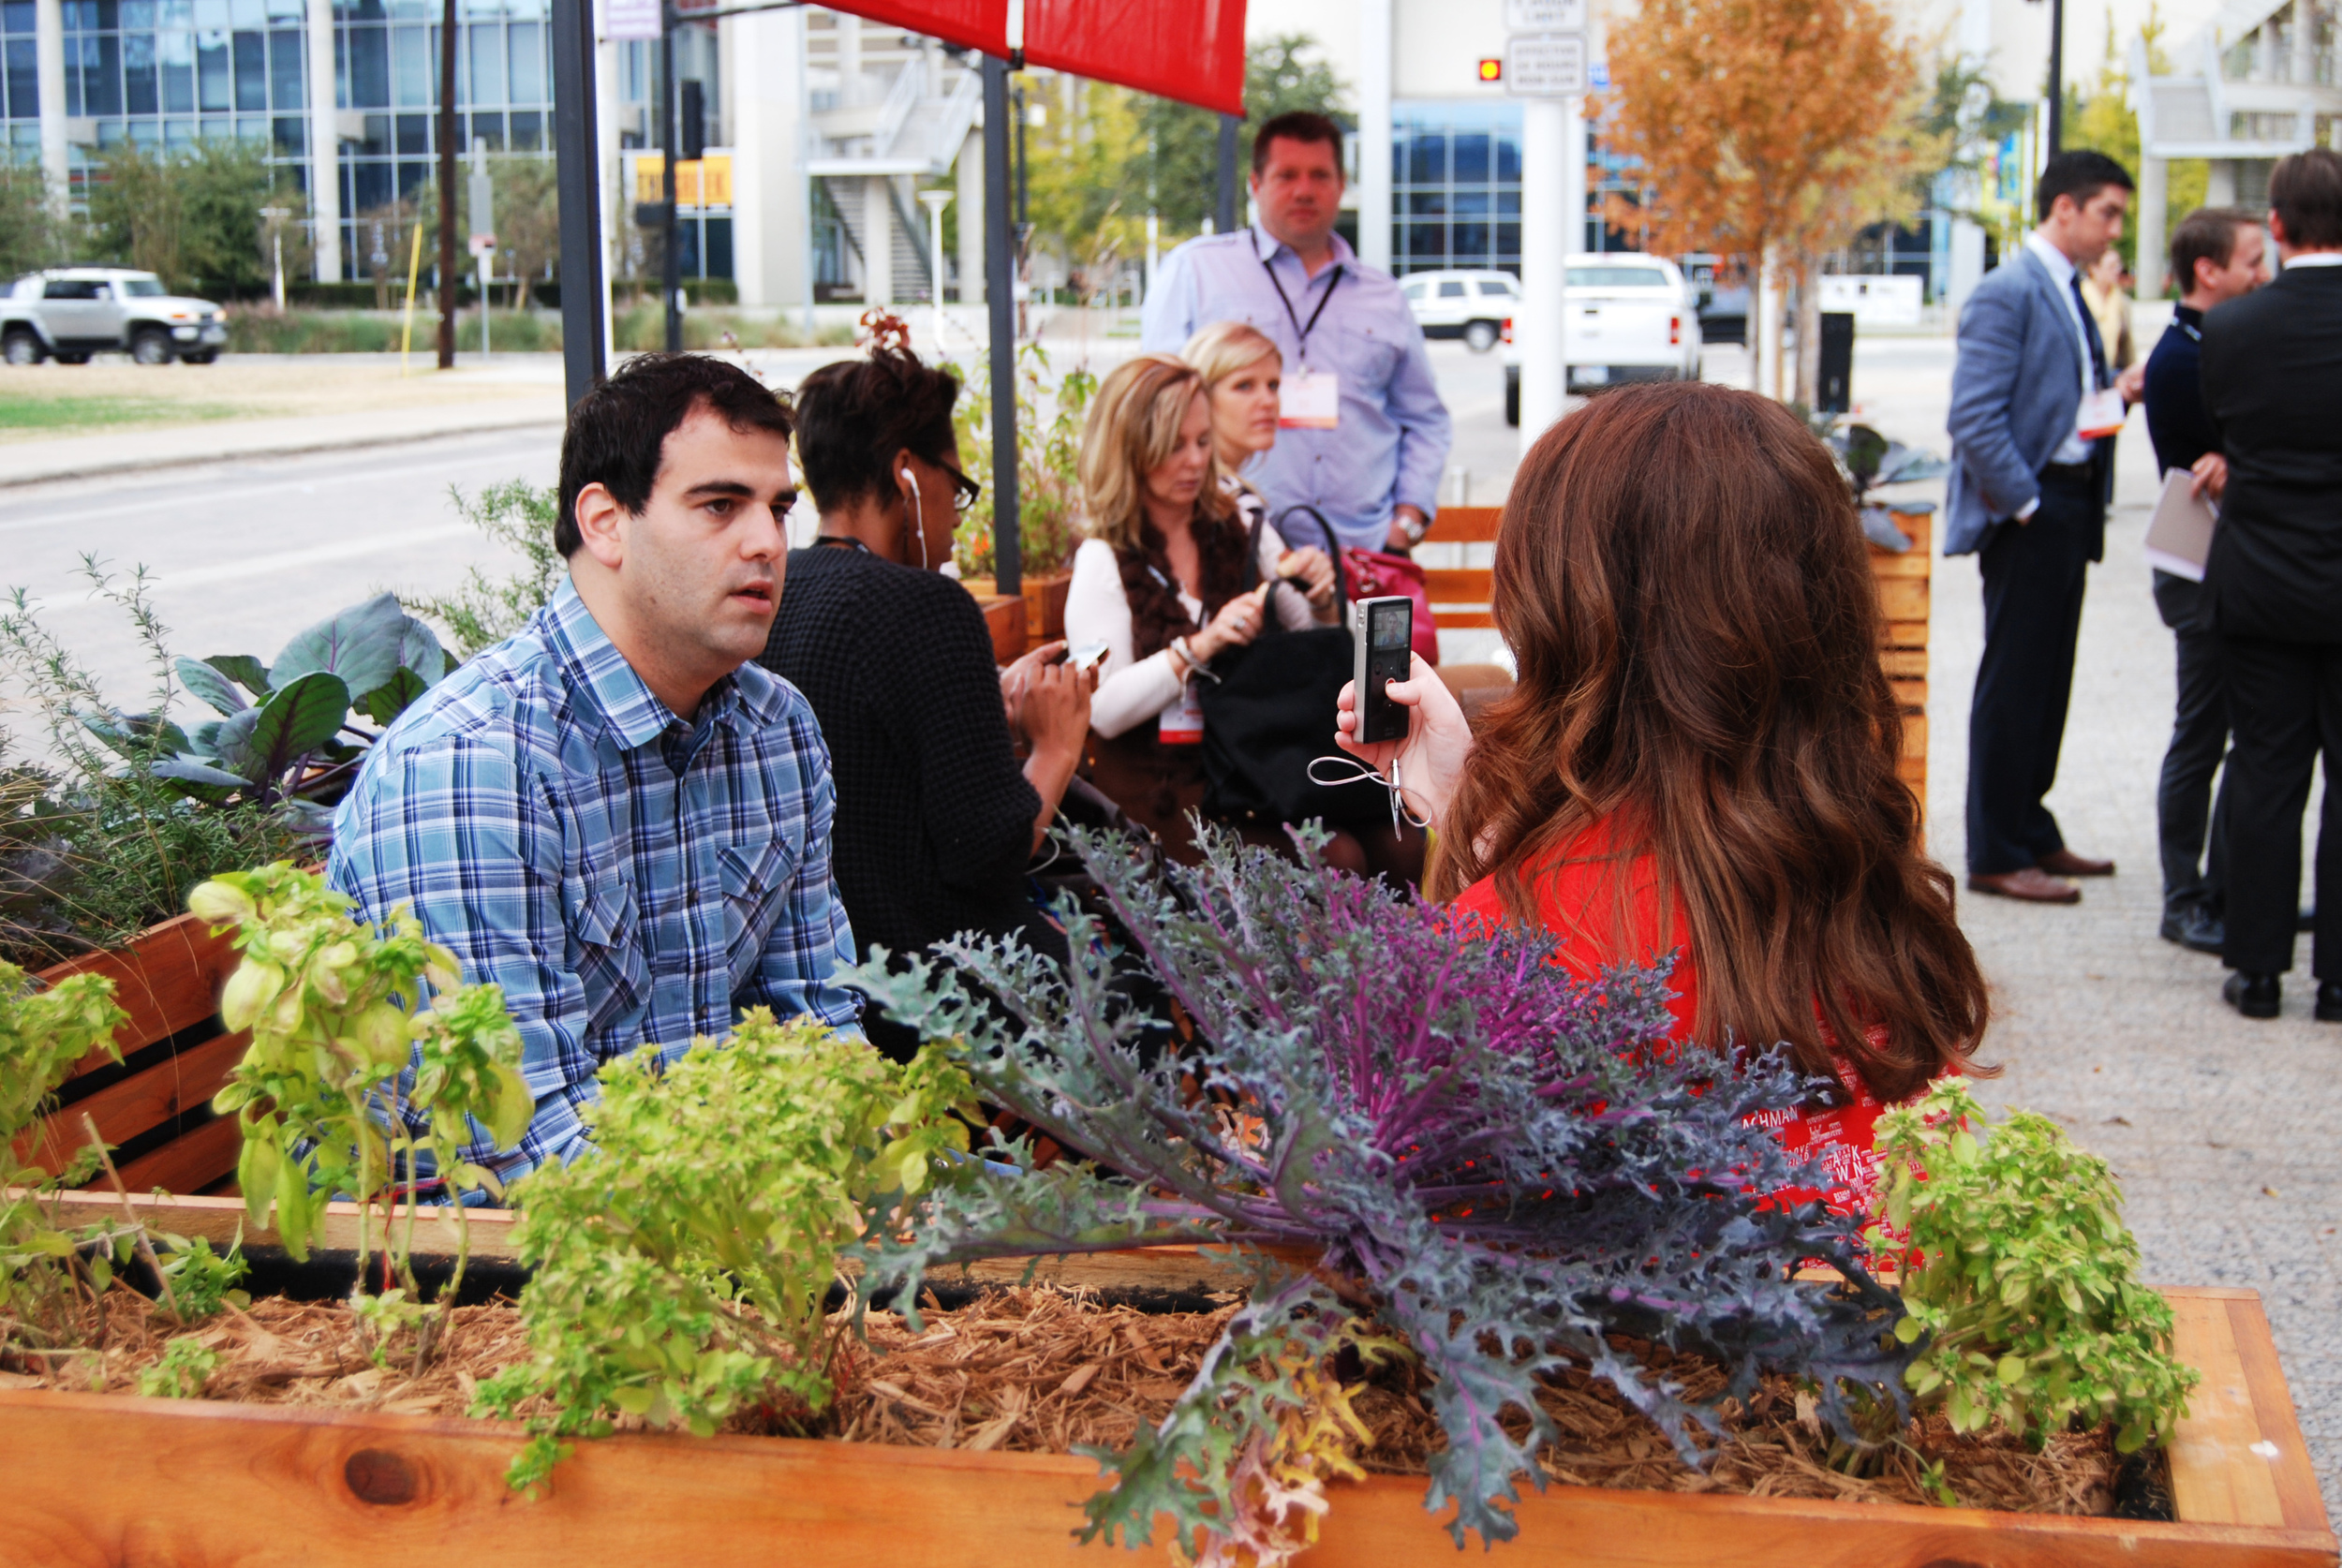 The parklet provided an idyllic setting for neighborhood storytelling